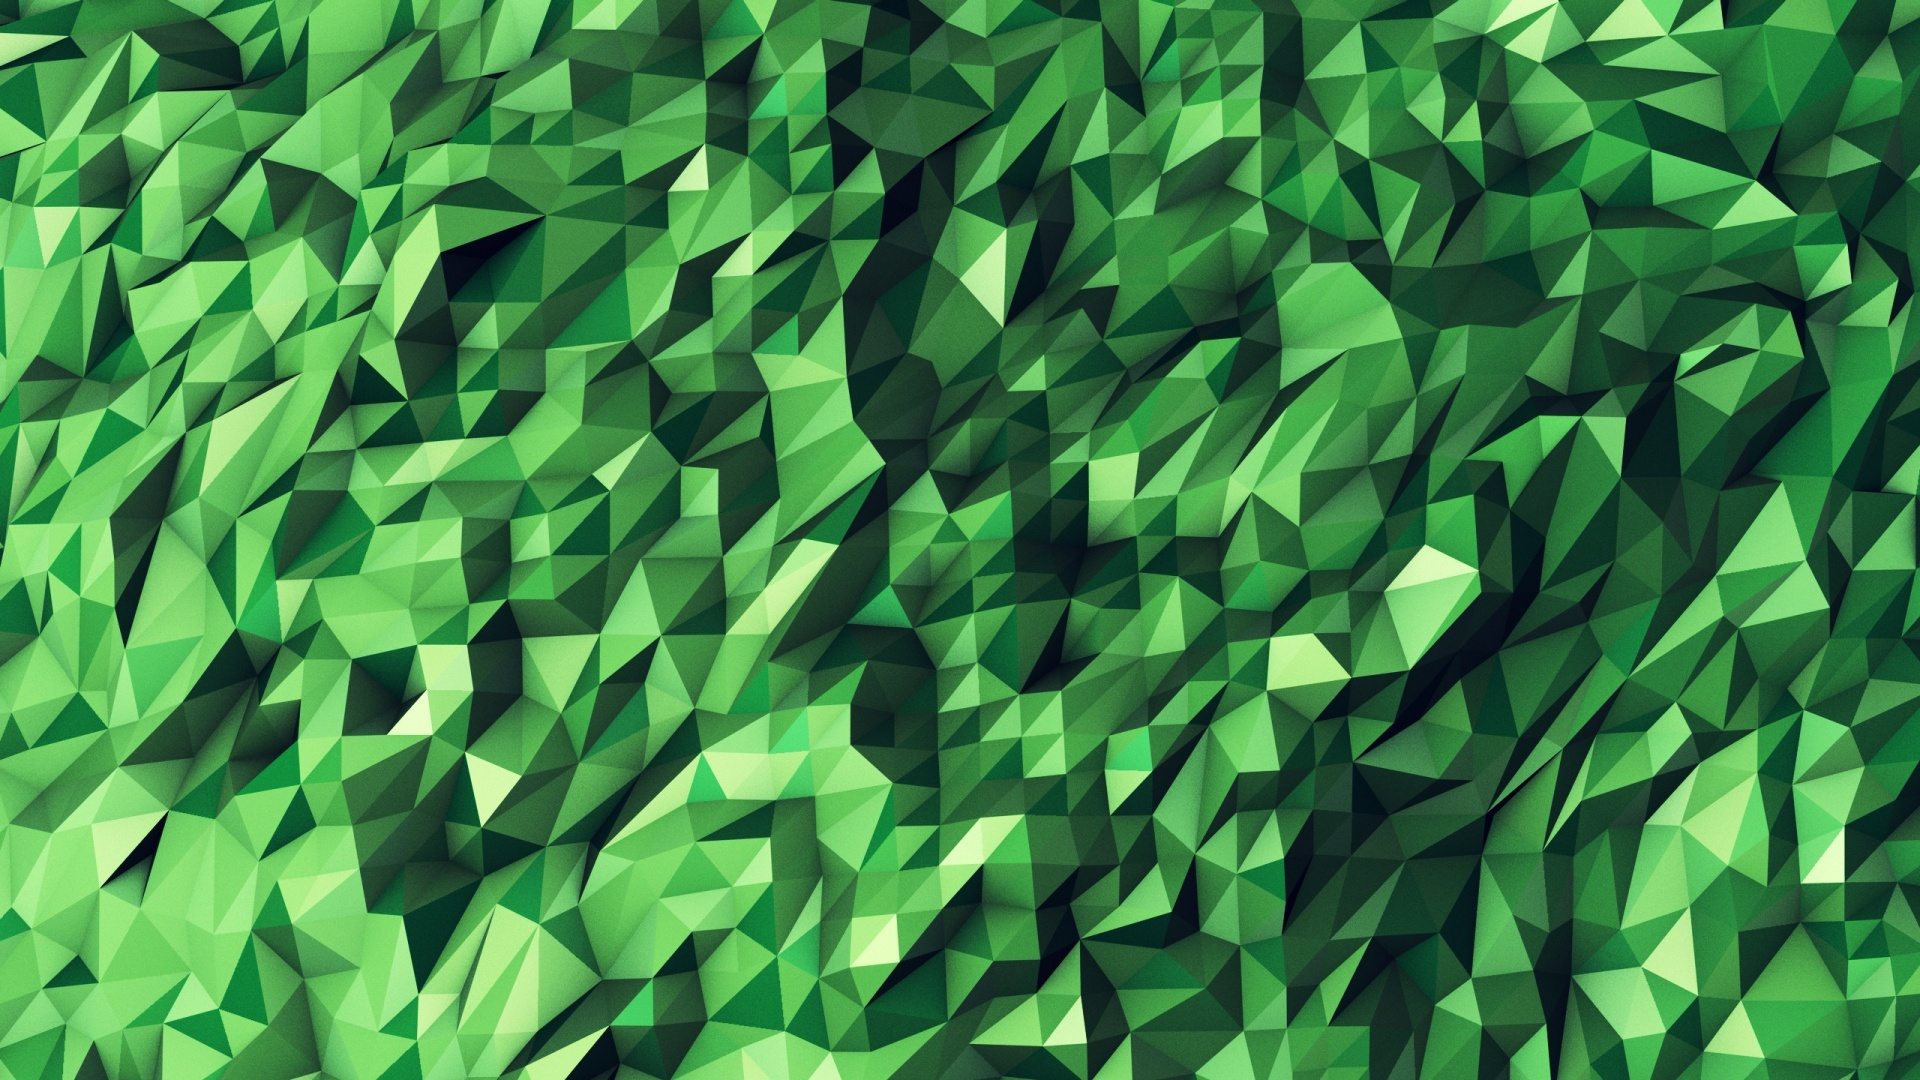 1920x1080 Green Abstract Geometric Shapes desktop PC and